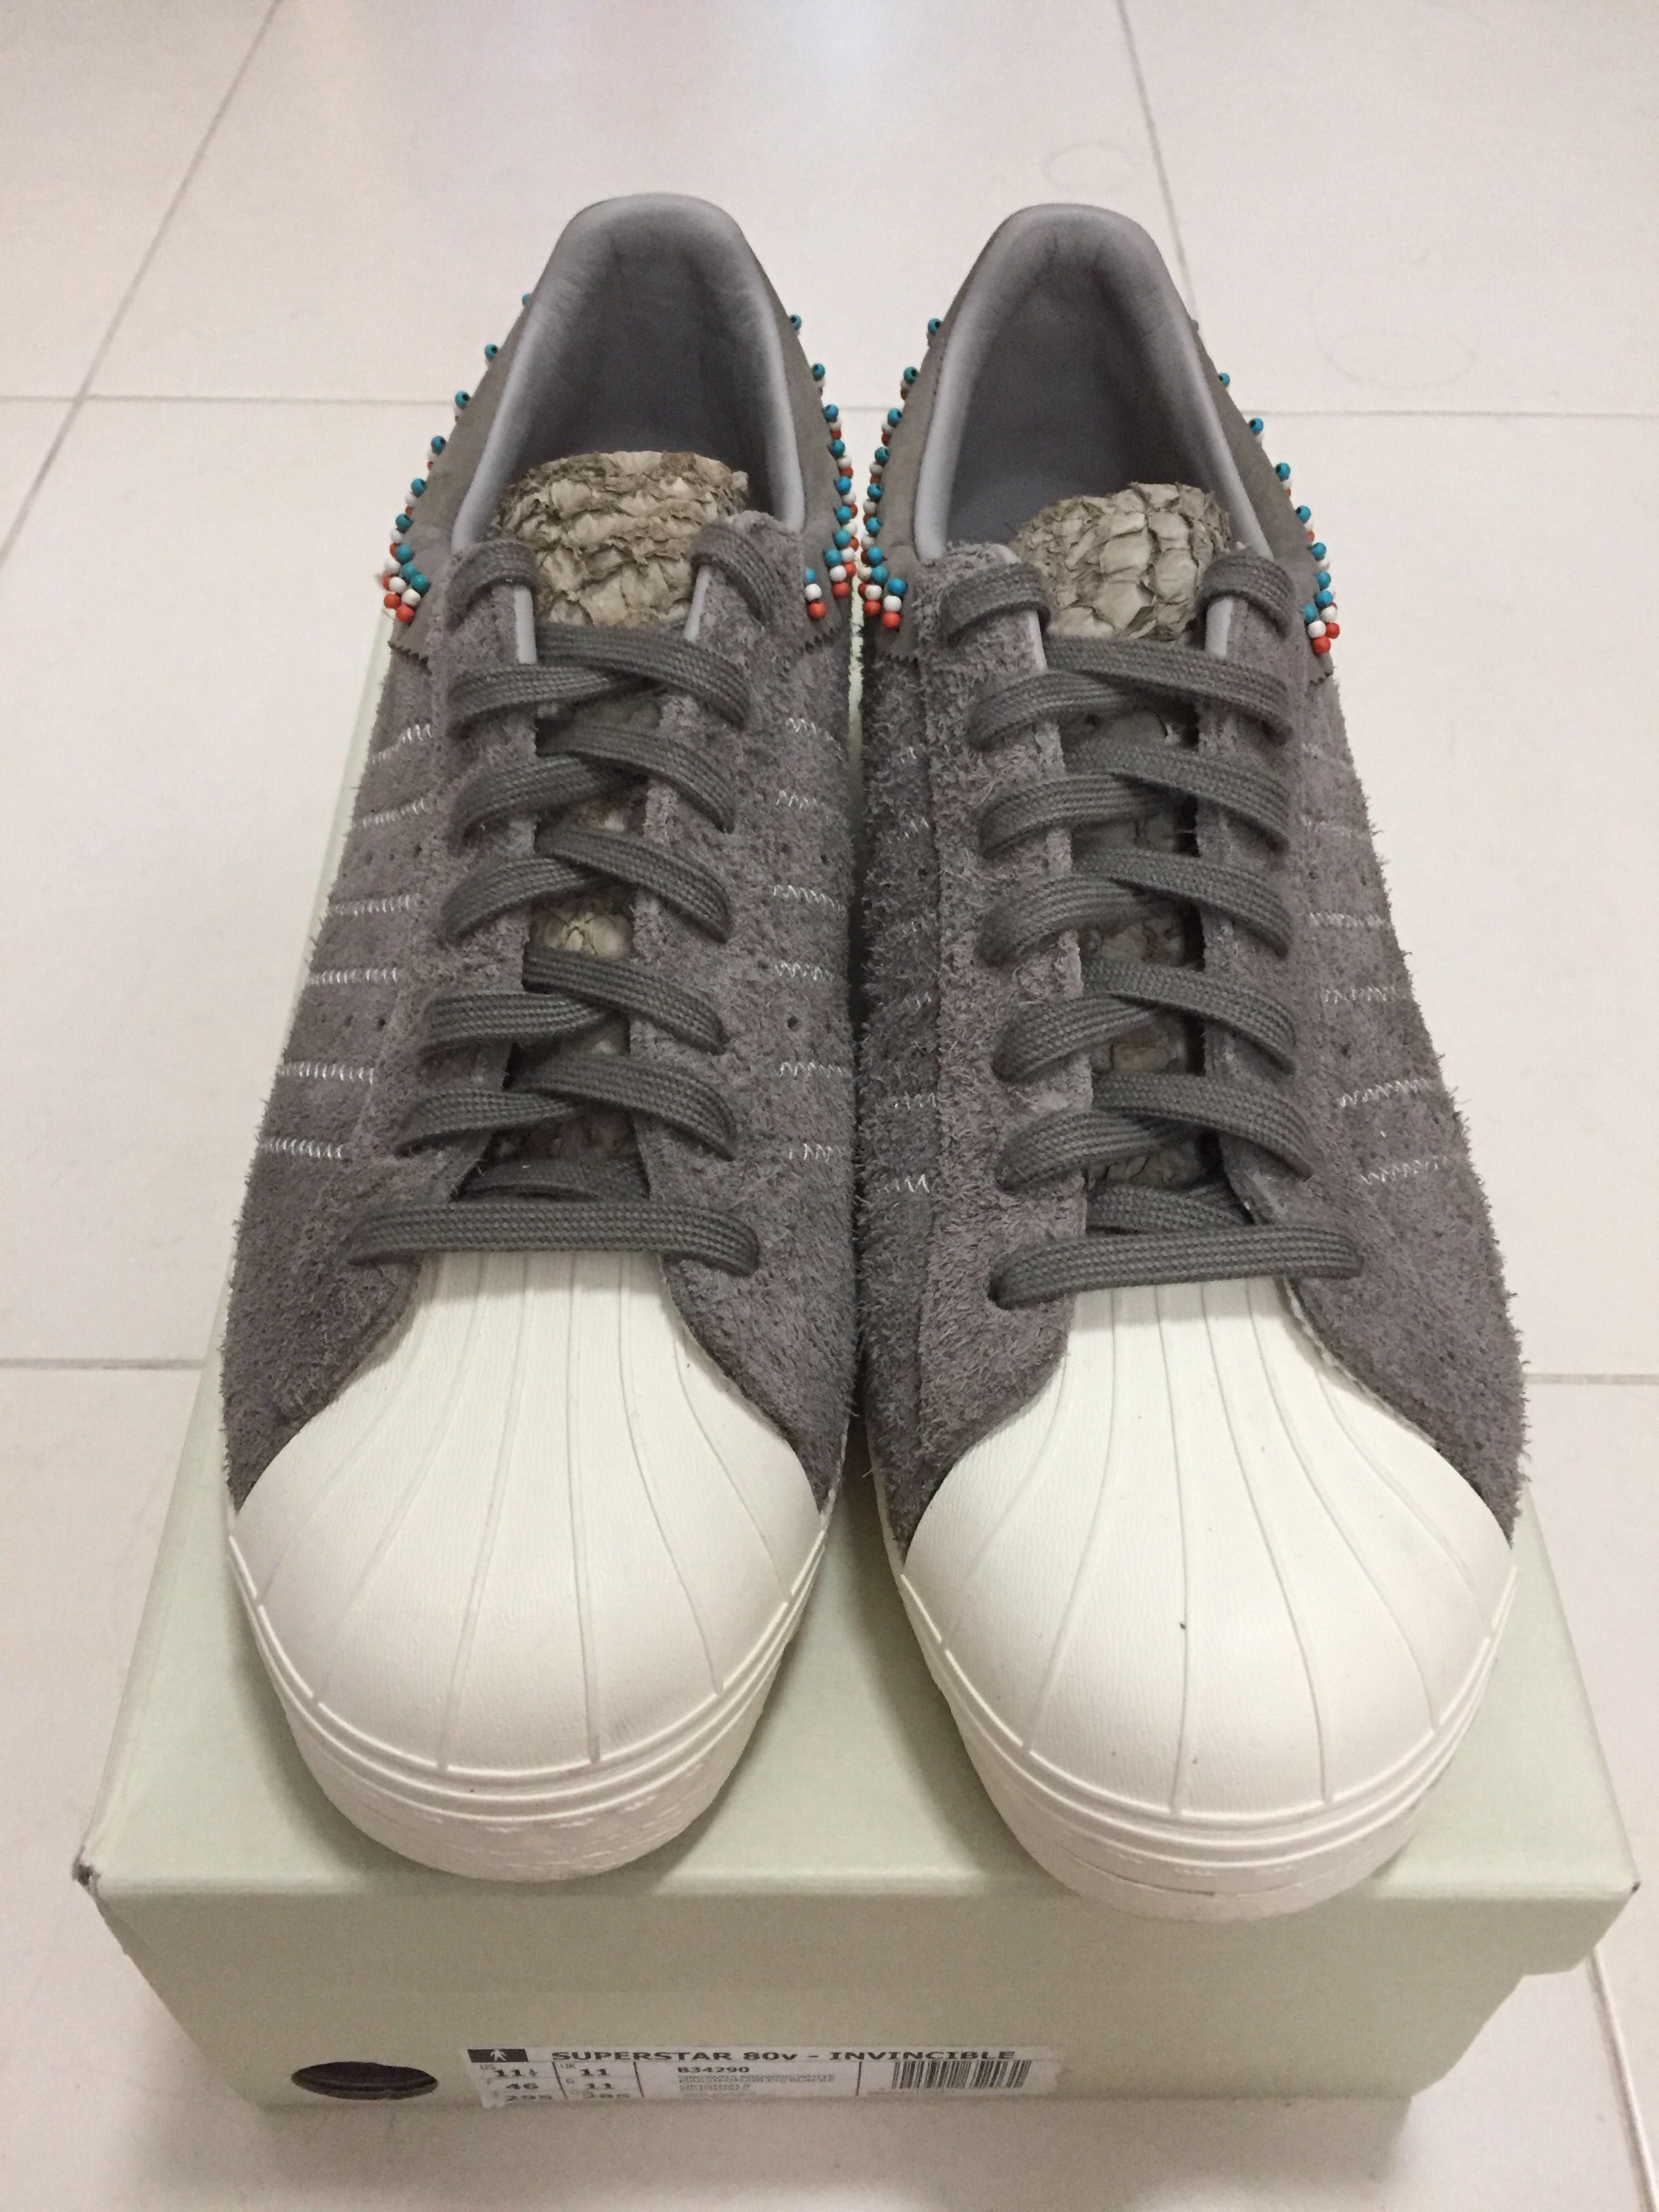 super popular 9dac9 7282a Adidas Consortium x Invincible Superstar 80v - UK 11, Mens Fashion,  Footwear, Sneakers on Carousell